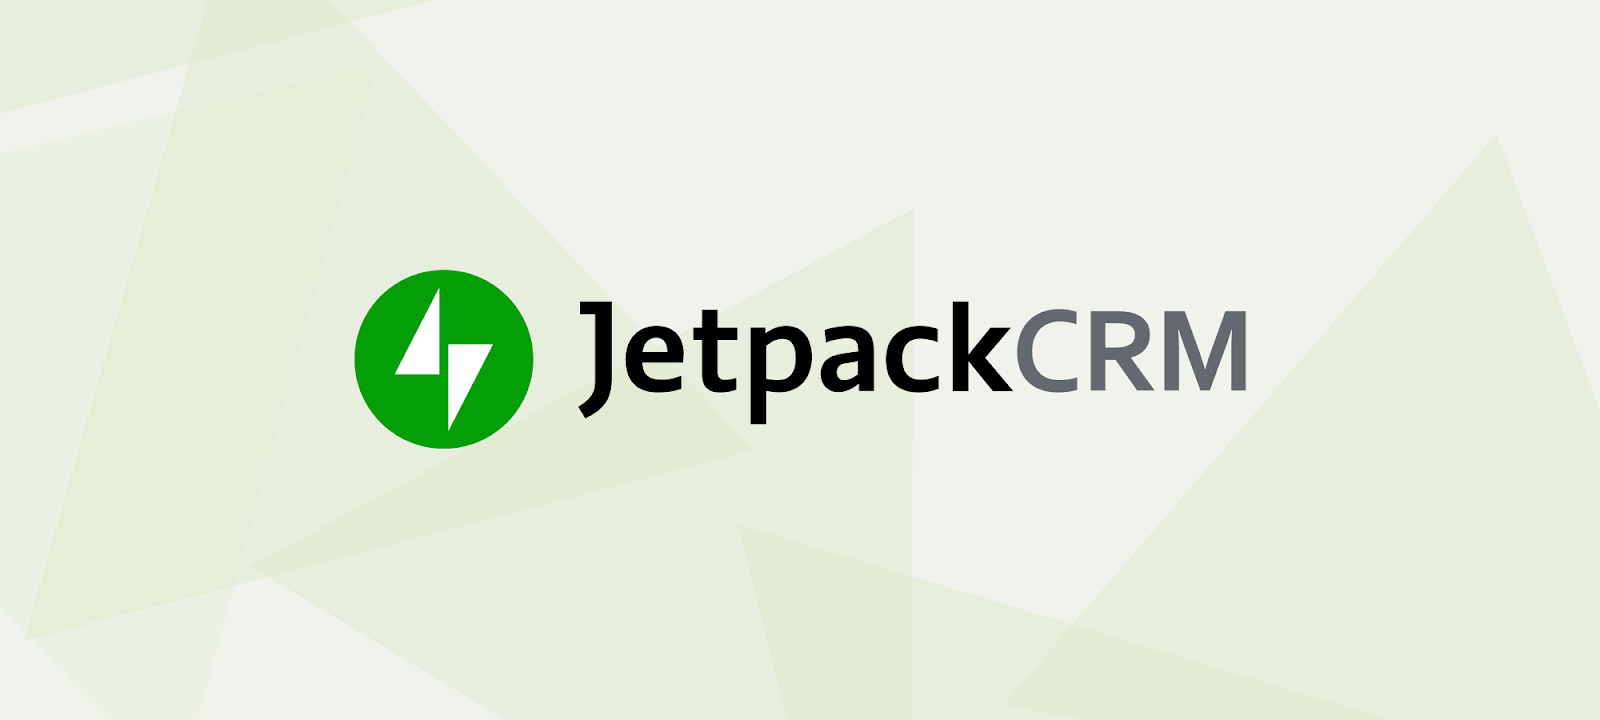 Introducing Jetpack CRM: Grow Your Business Through Better Contact Management